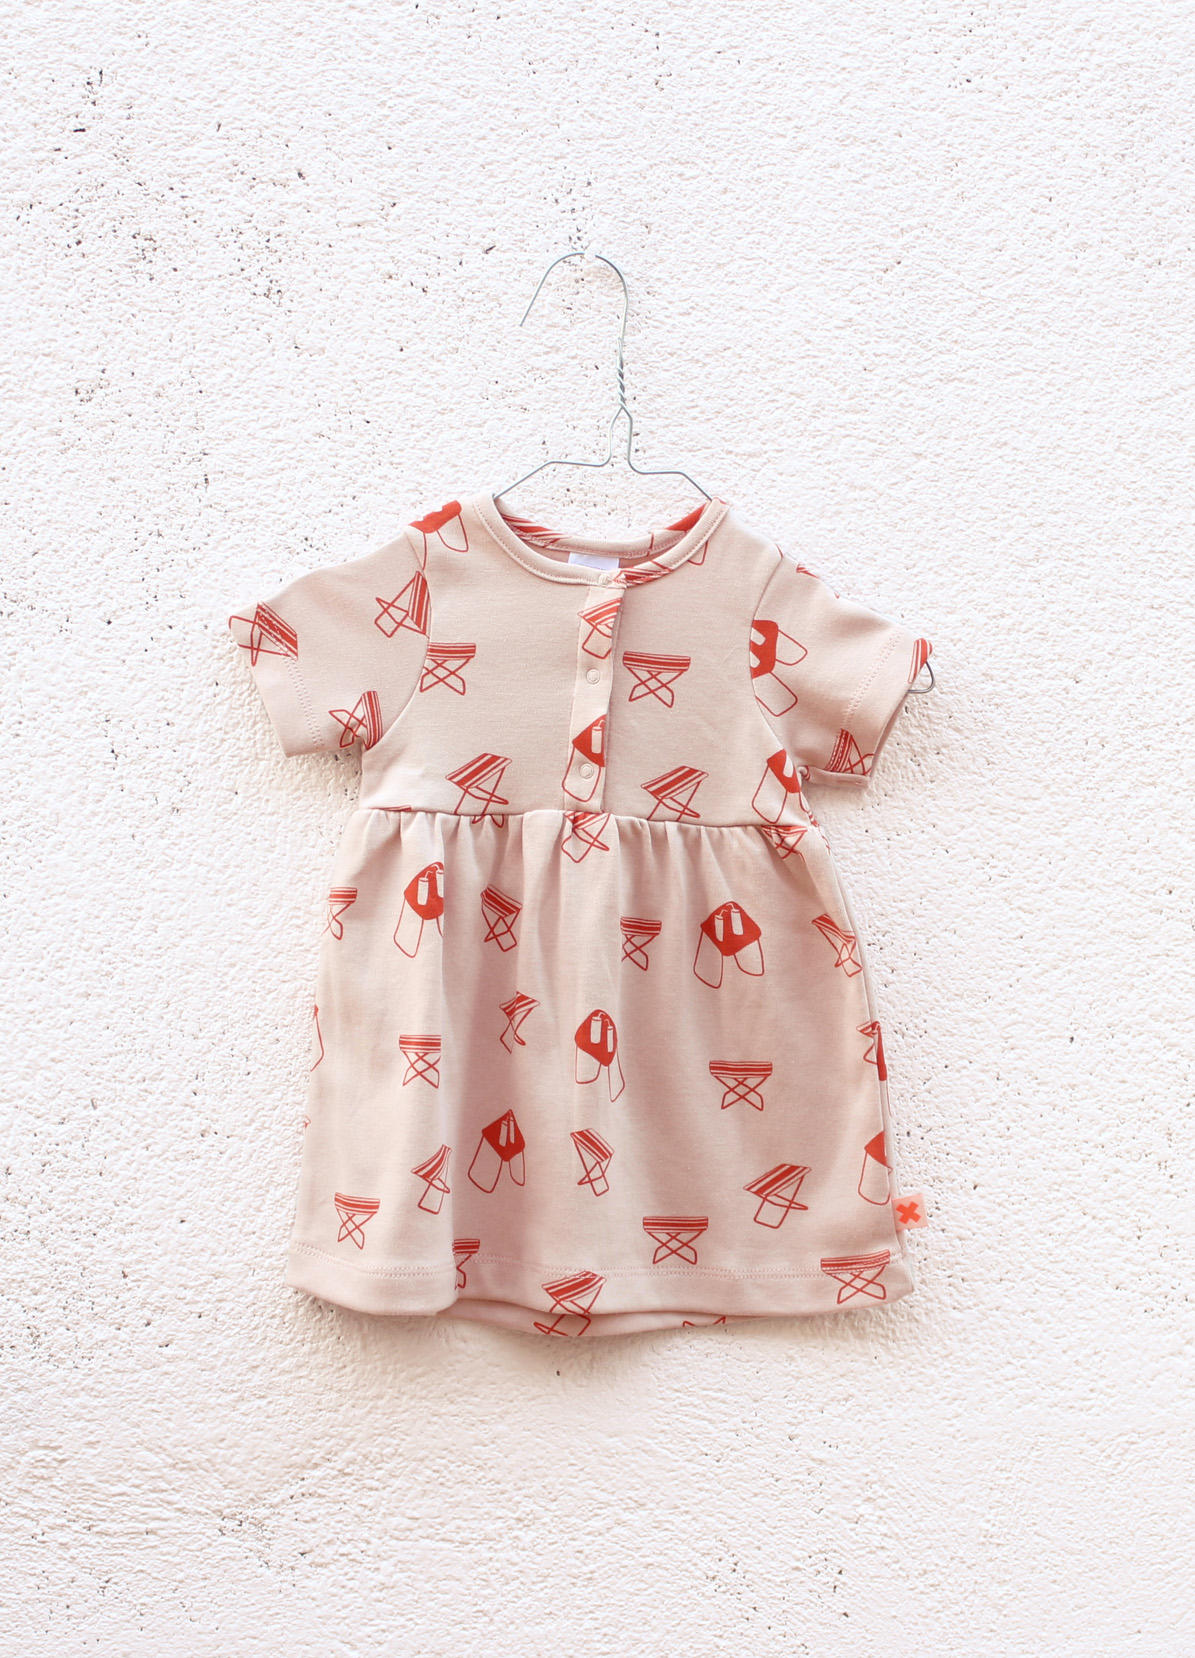 SS15_tinycottons16_s